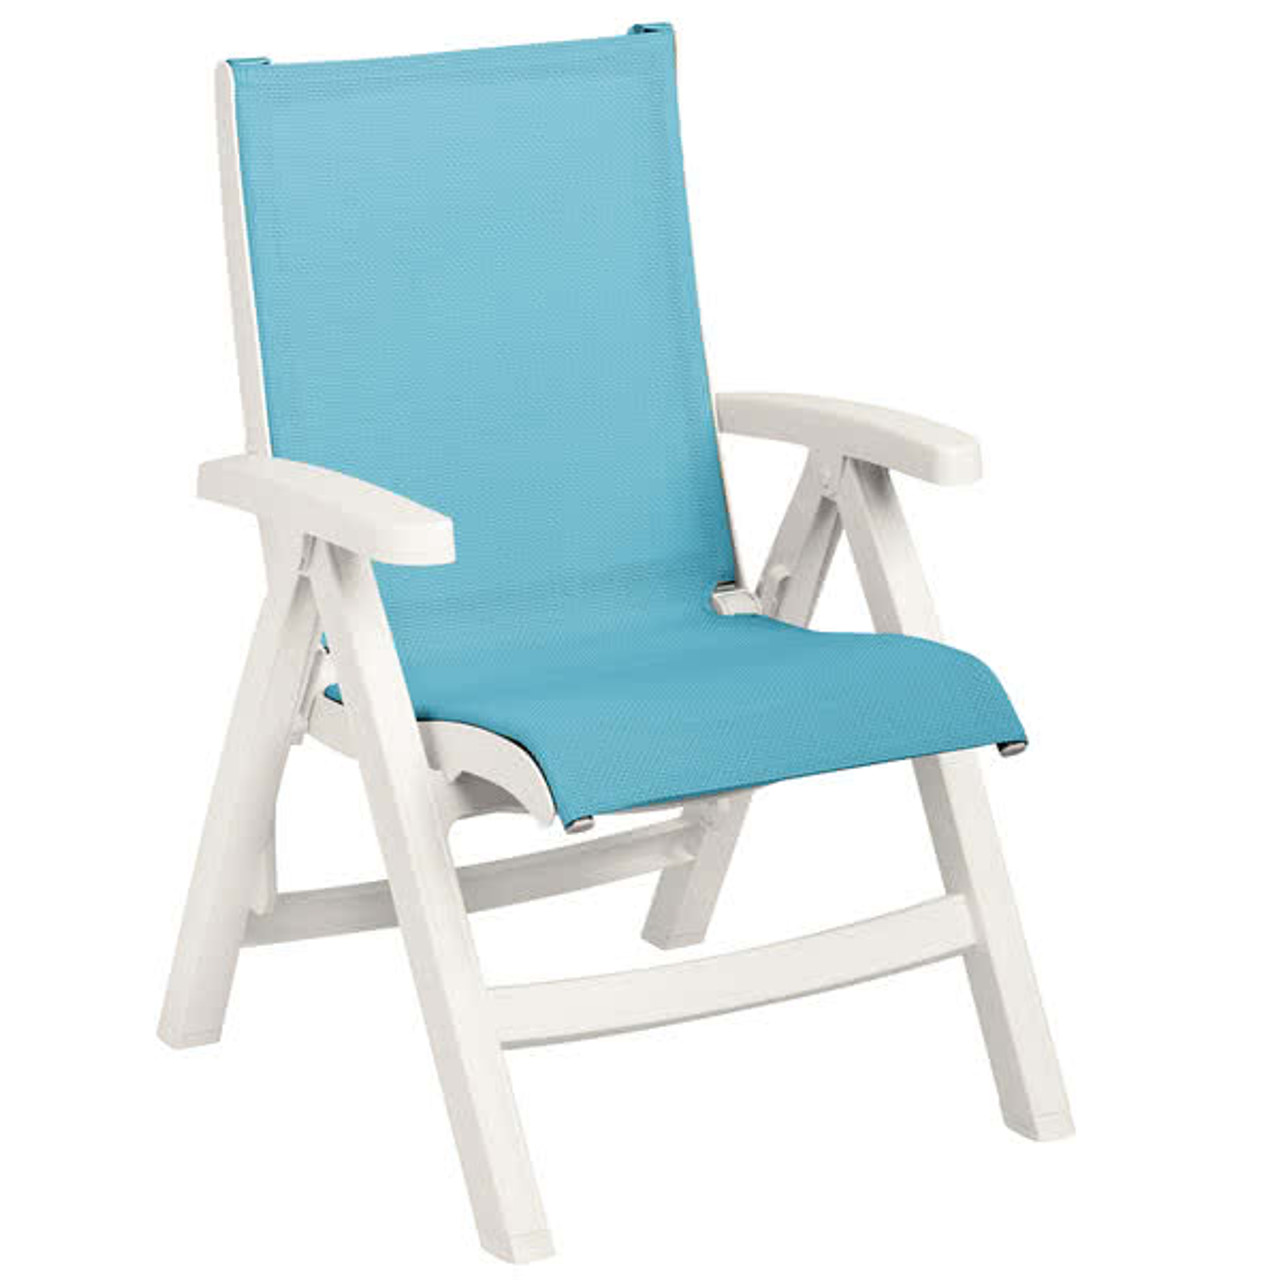 Resort Furniture And Chairs